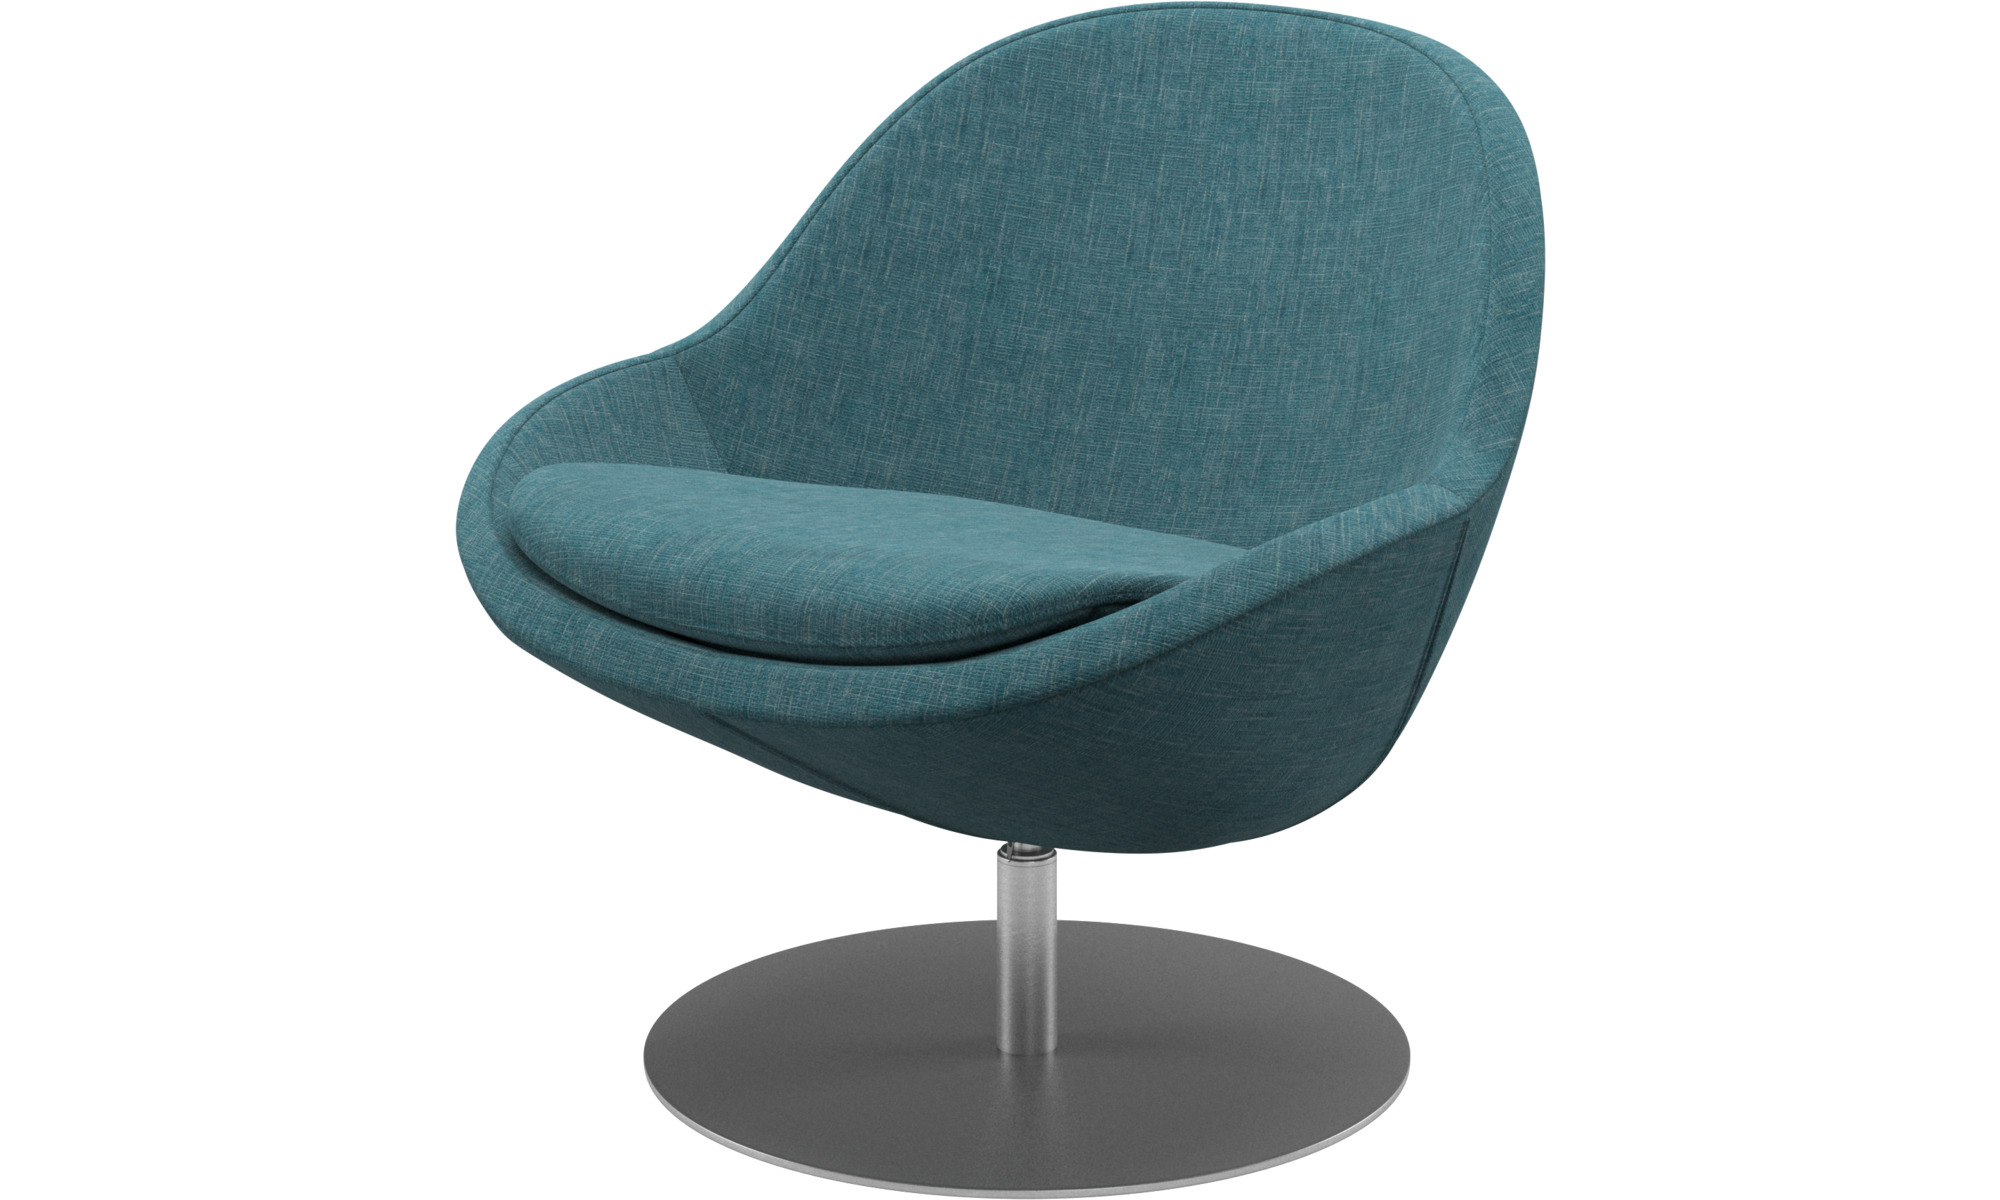 Armchairs - Veneto chair with swivel function - Blue - Fabric